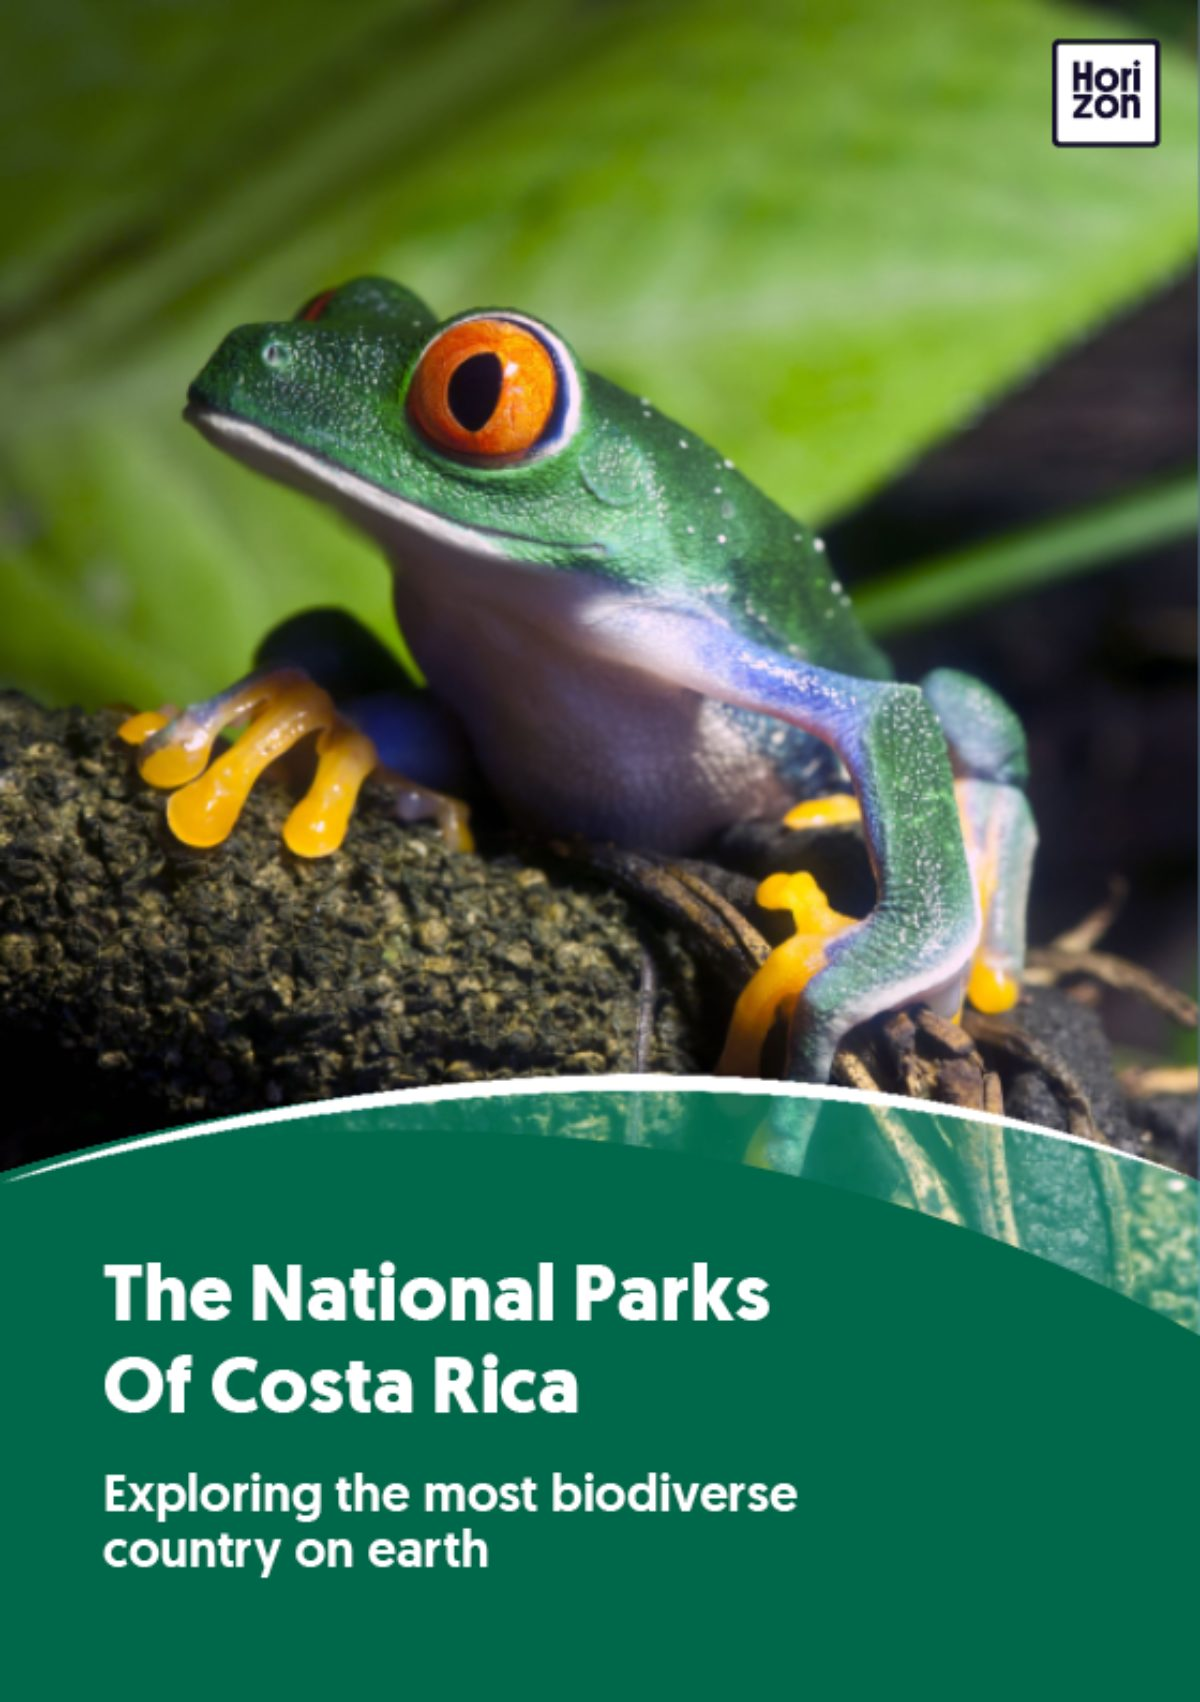 The National Parks Of Costa Rica